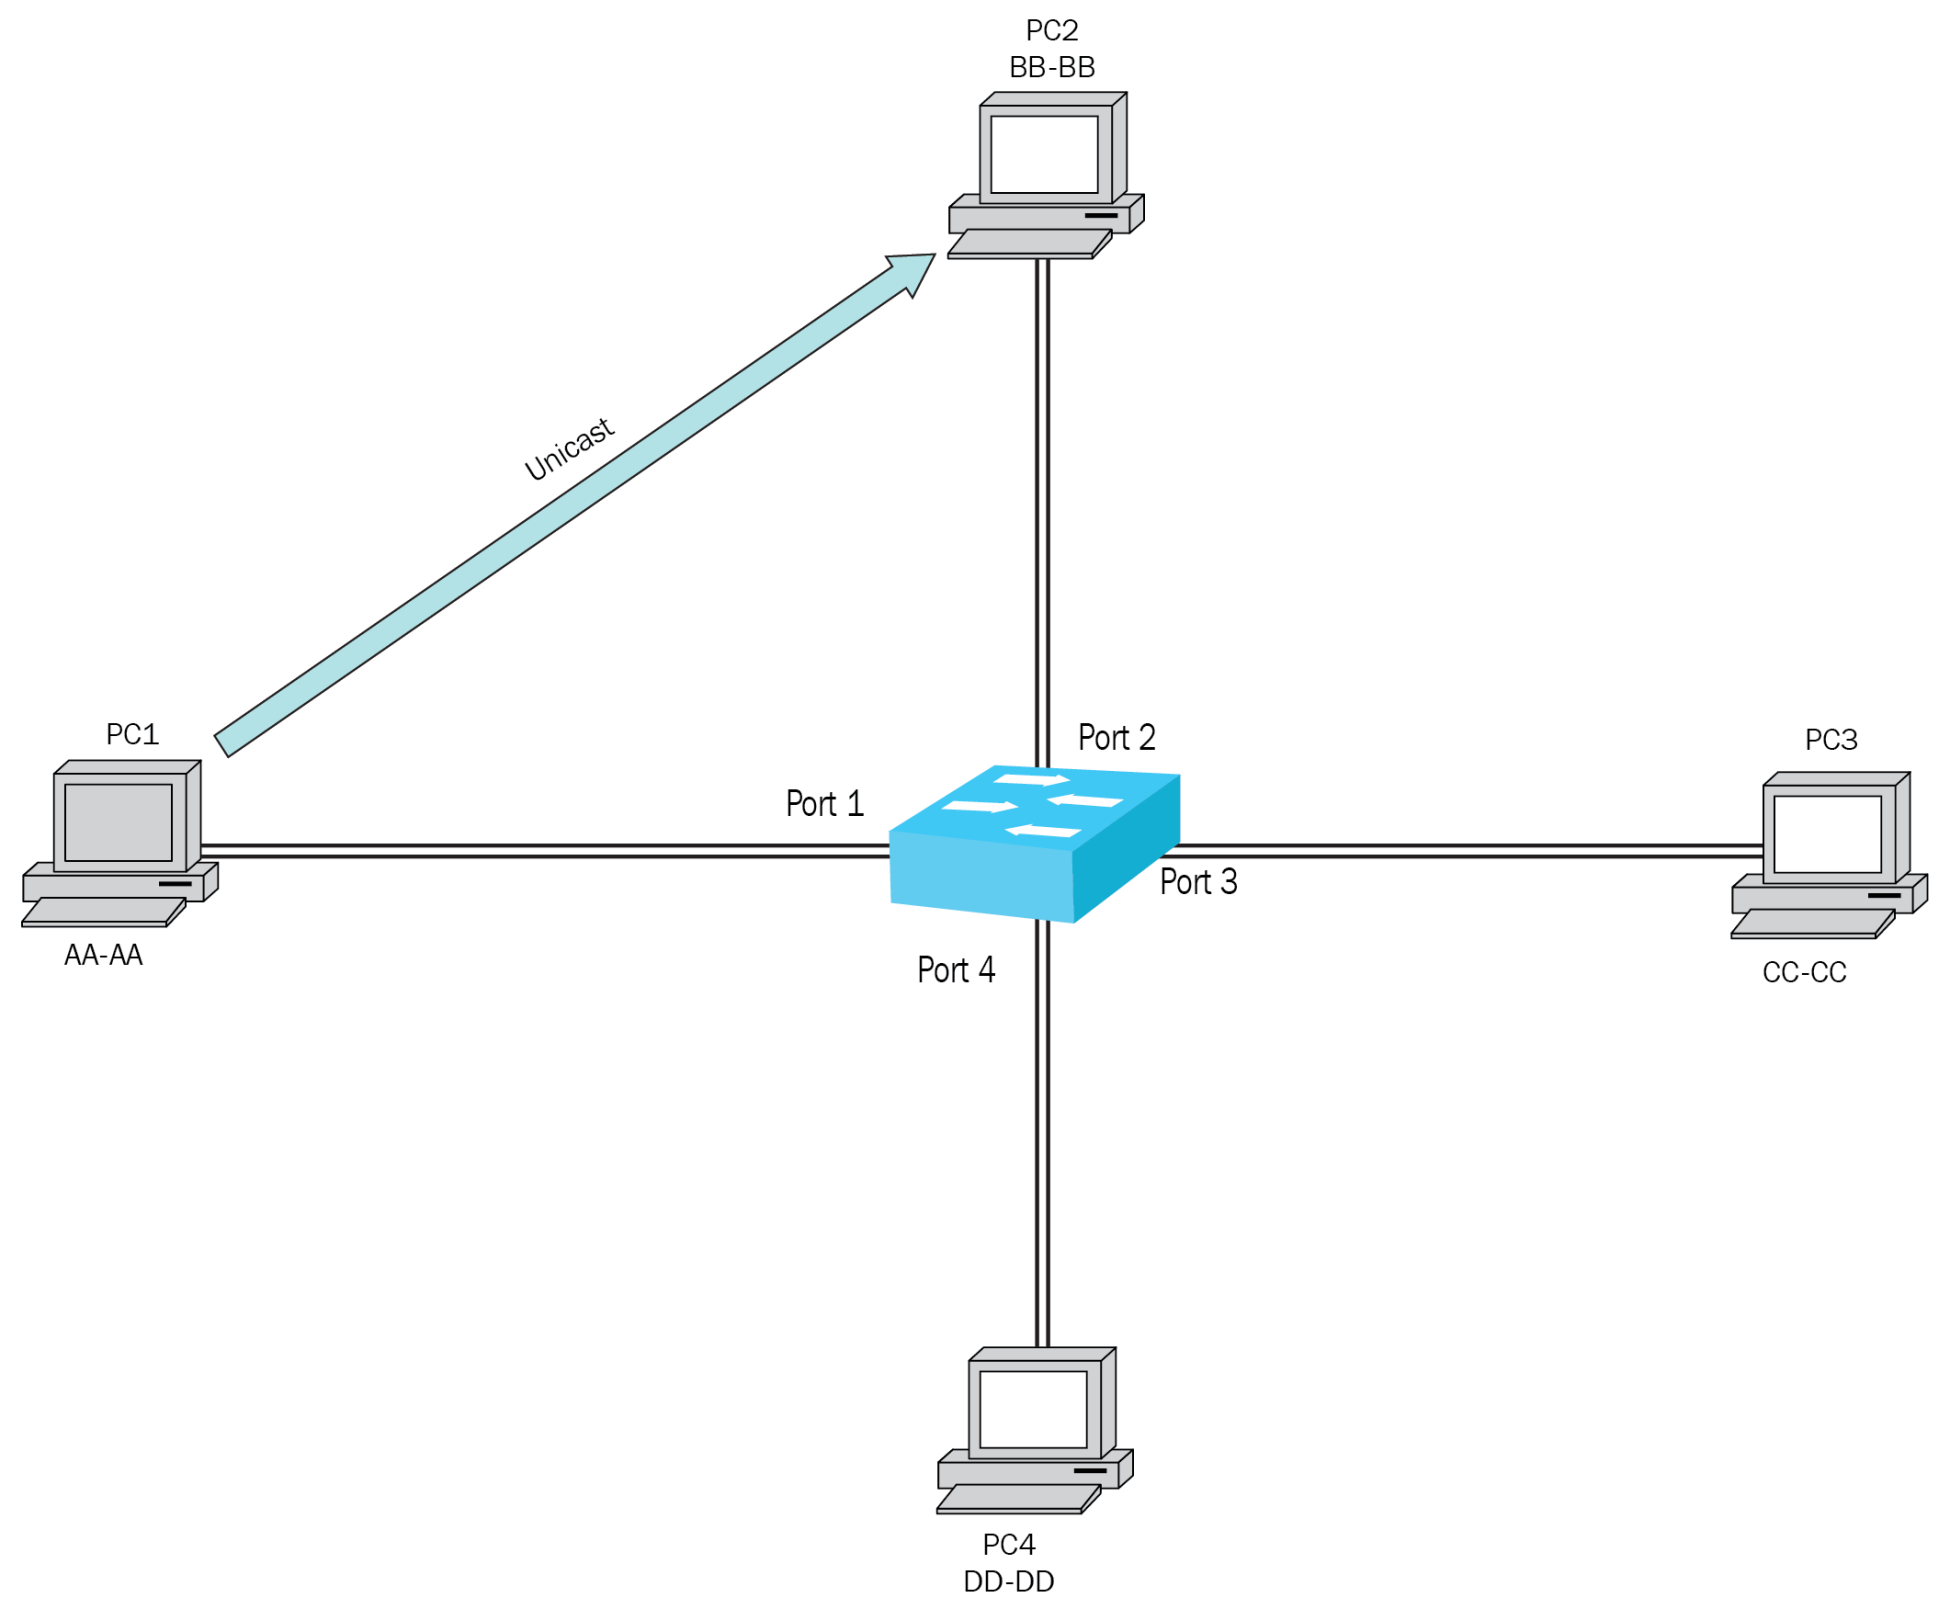 Transmission types at the Data Link Layer - CompTIA Network+